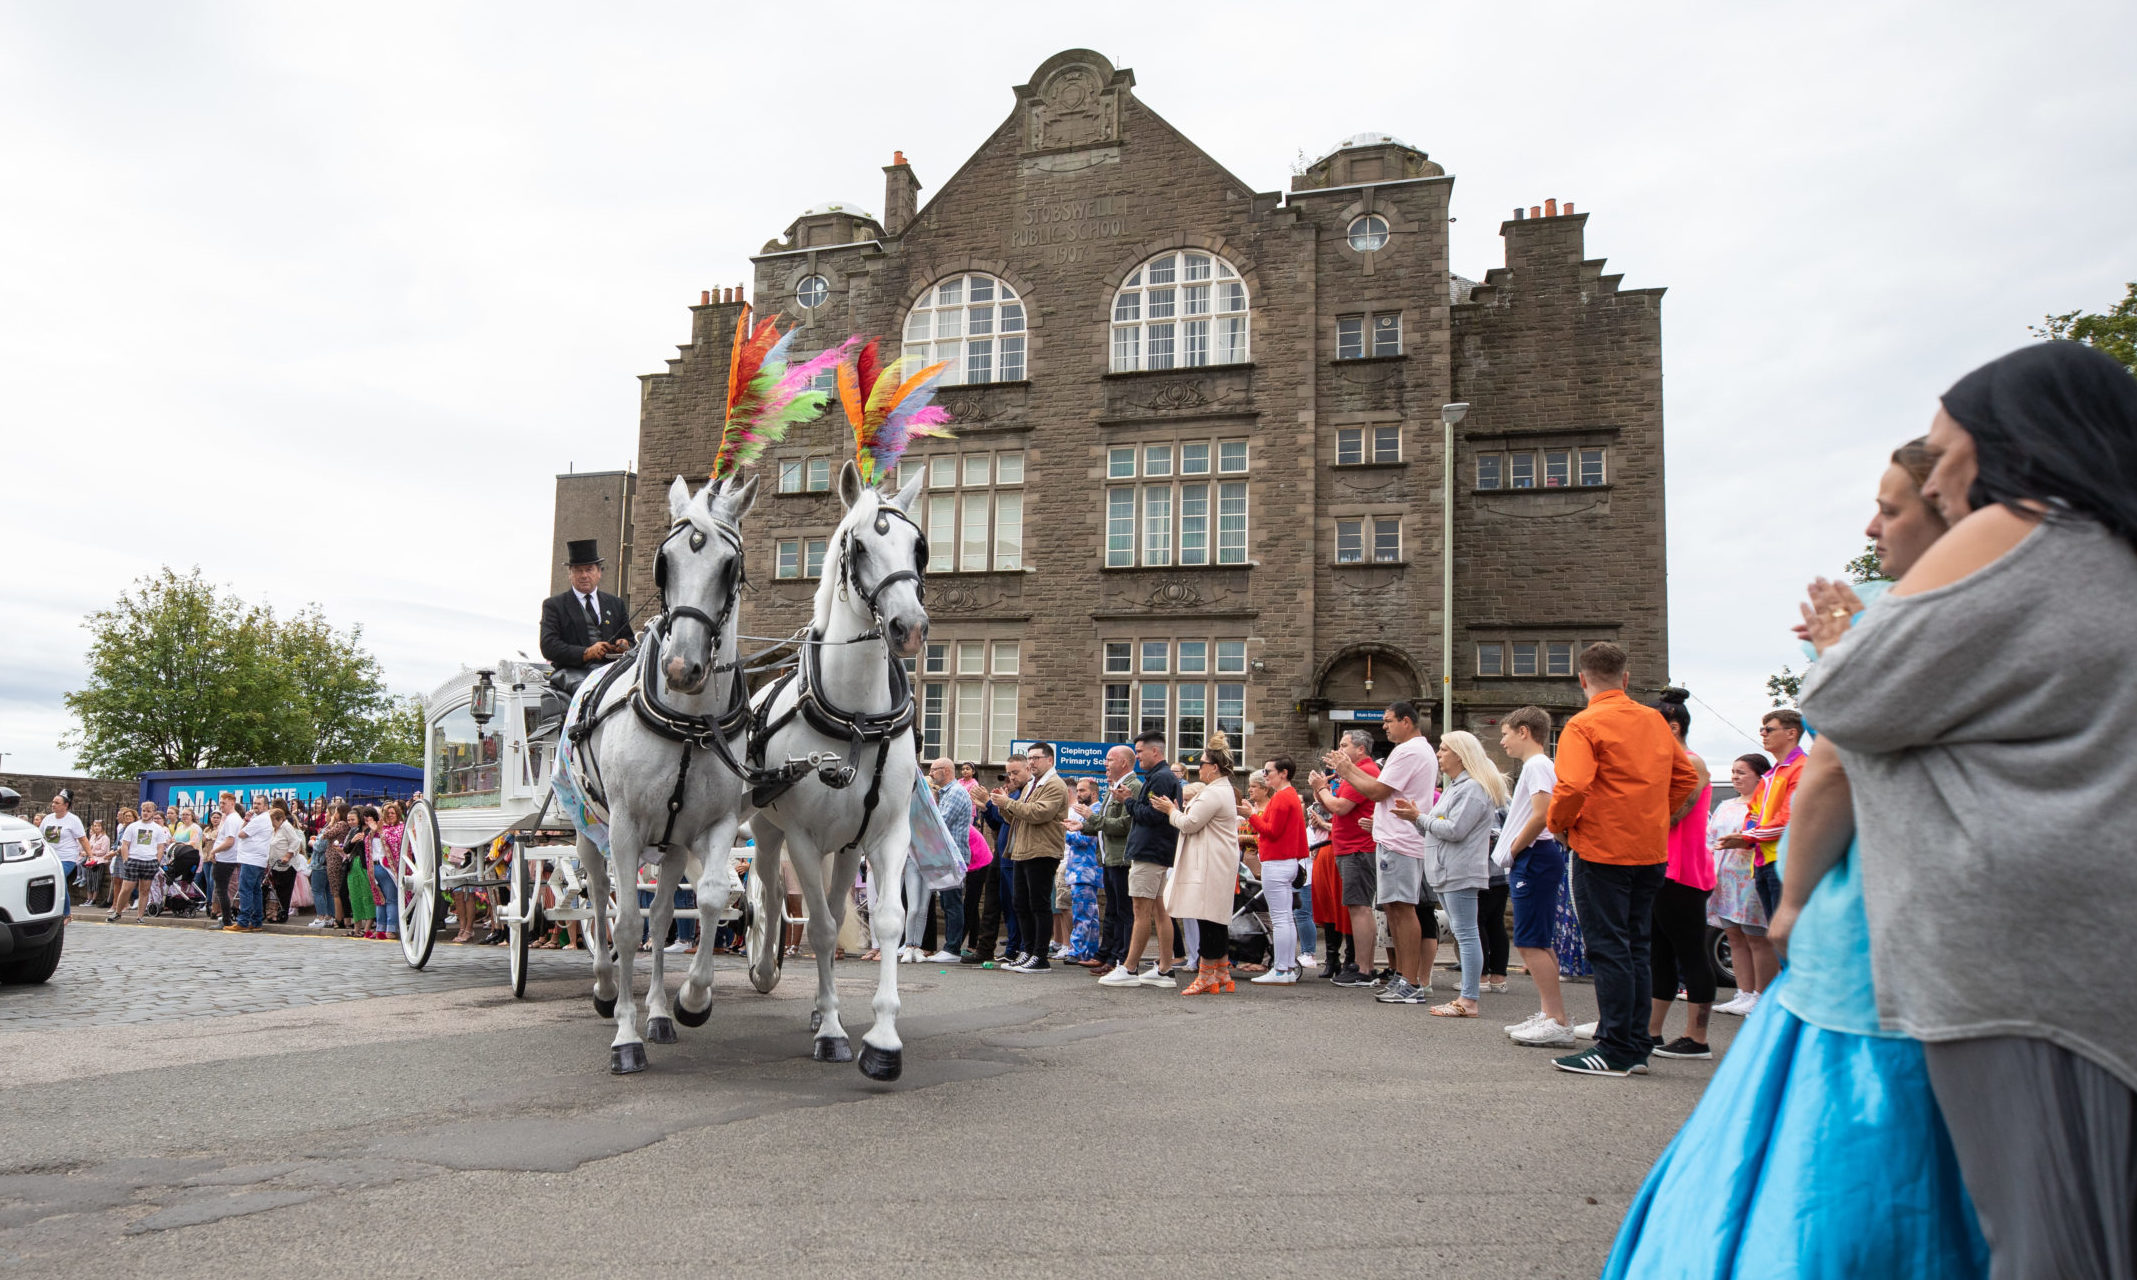 The horse-and-carriage pass Clepington Primary School.